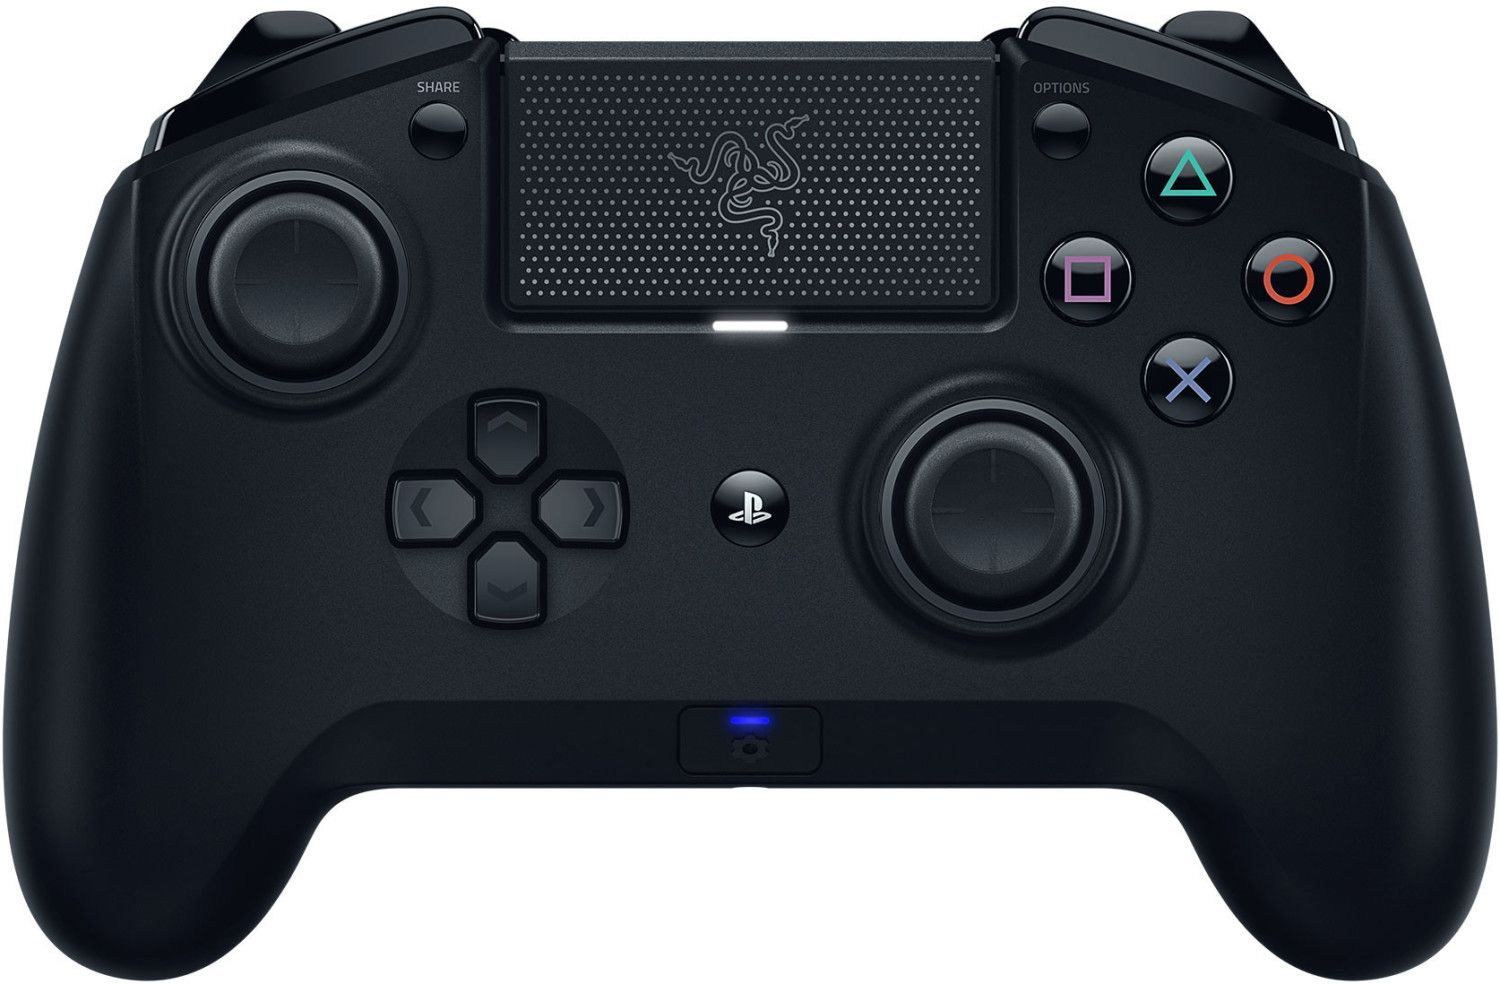 Razer Raiju Tournament Edition PS4/PC Controller für 54,99€ (statt 90€)   refurbished